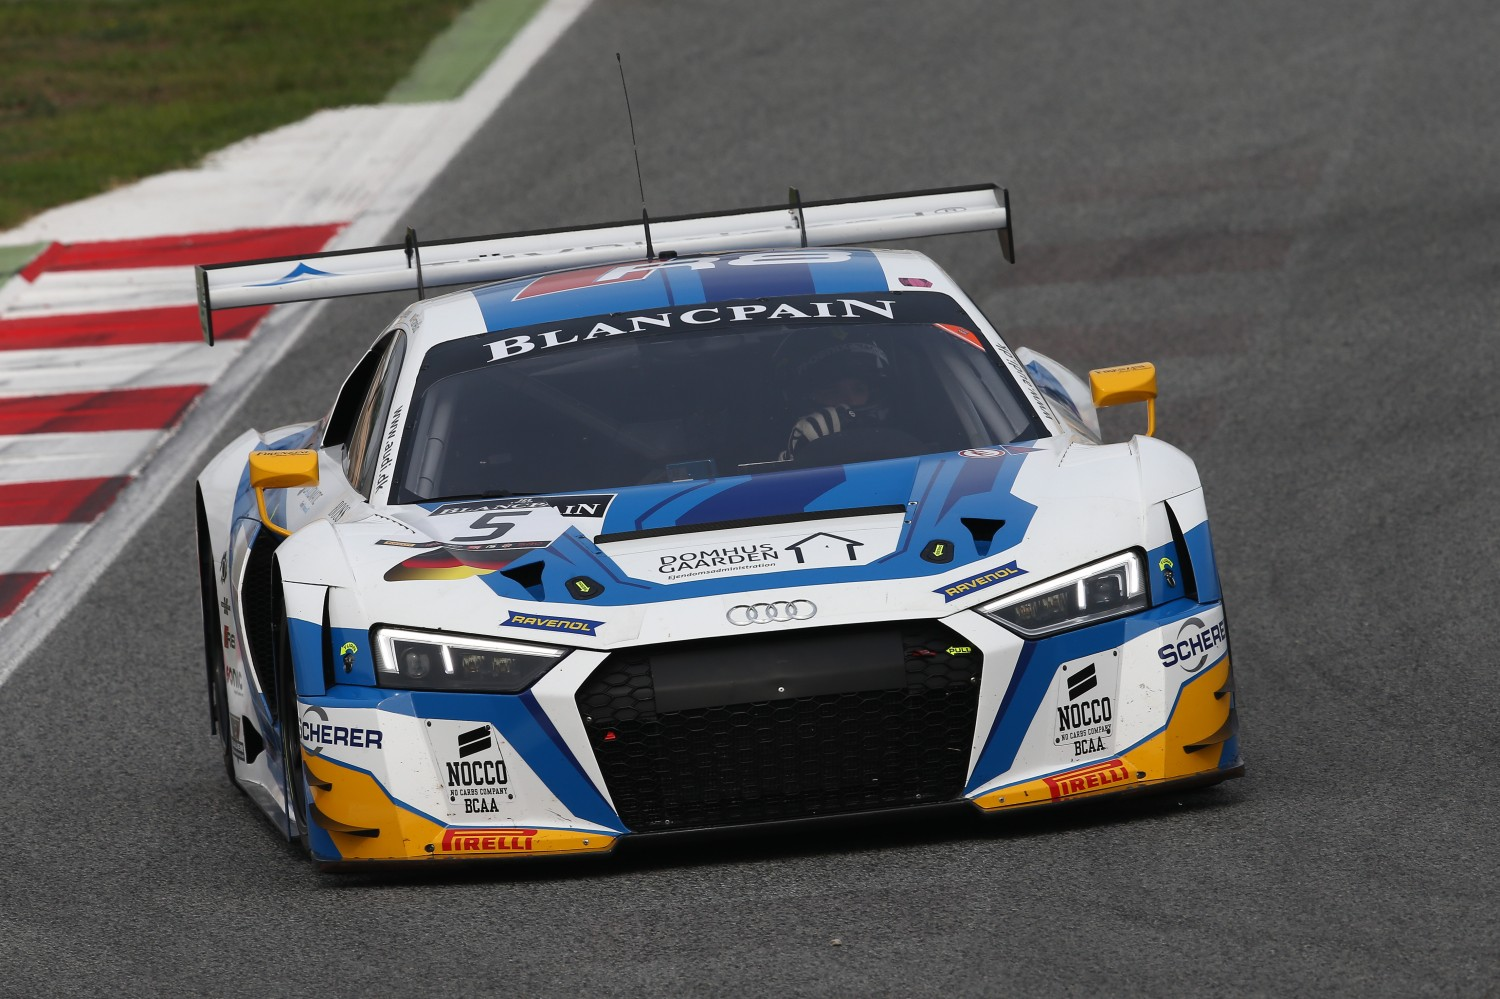 Phoenix Racing Audi on top in first free practice